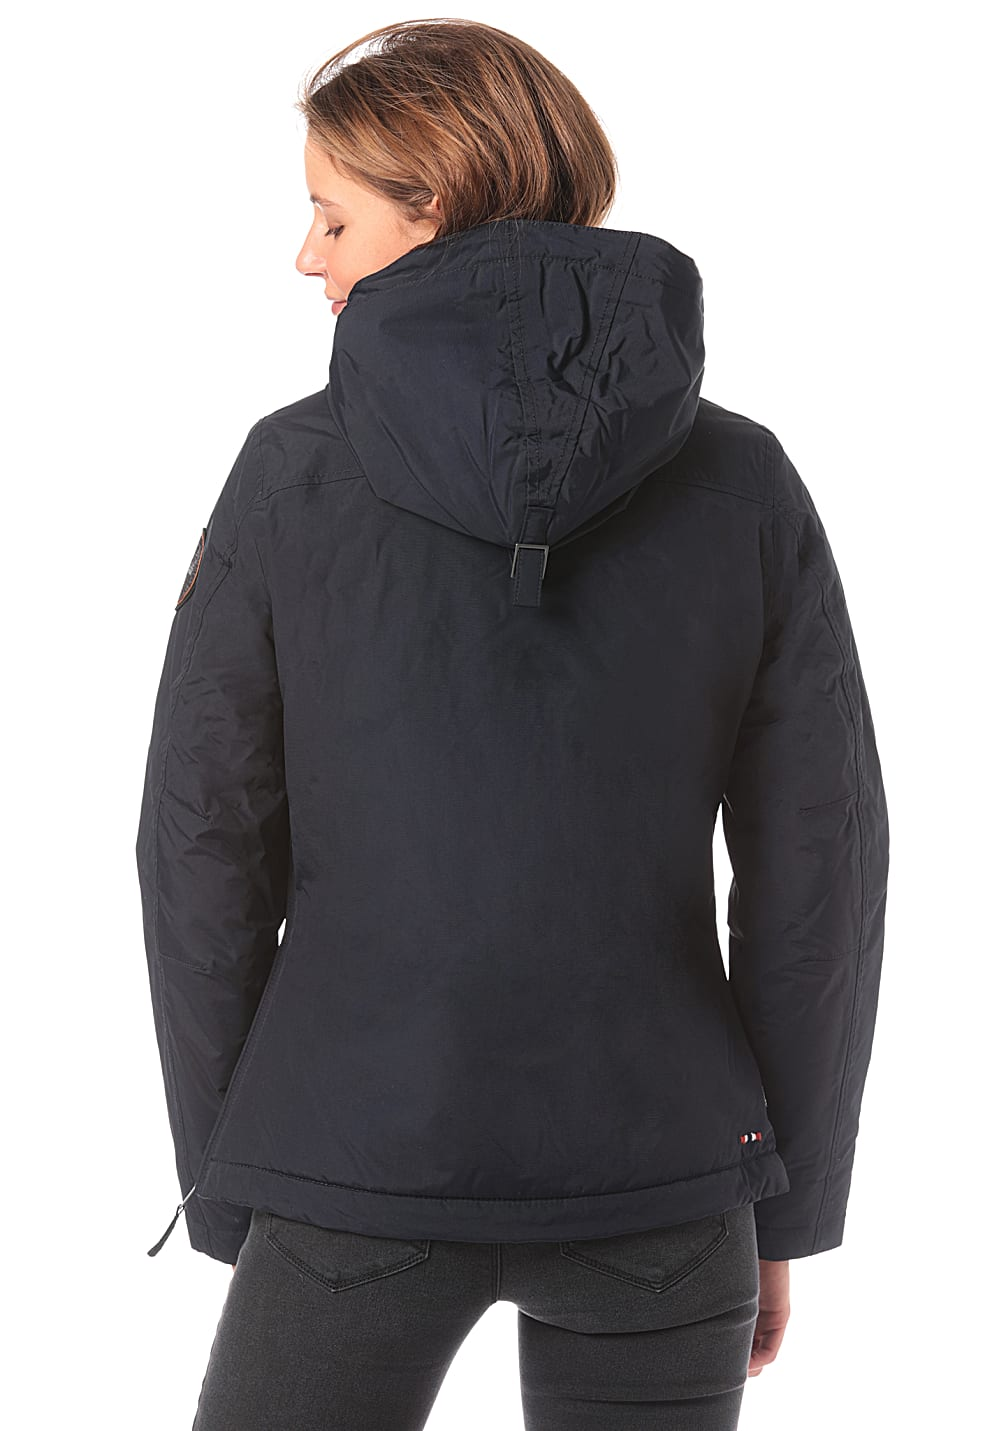 size 40 7520a 2ada5 Napapijri Rainforest Winter 2 - Jacke für Damen - Blau